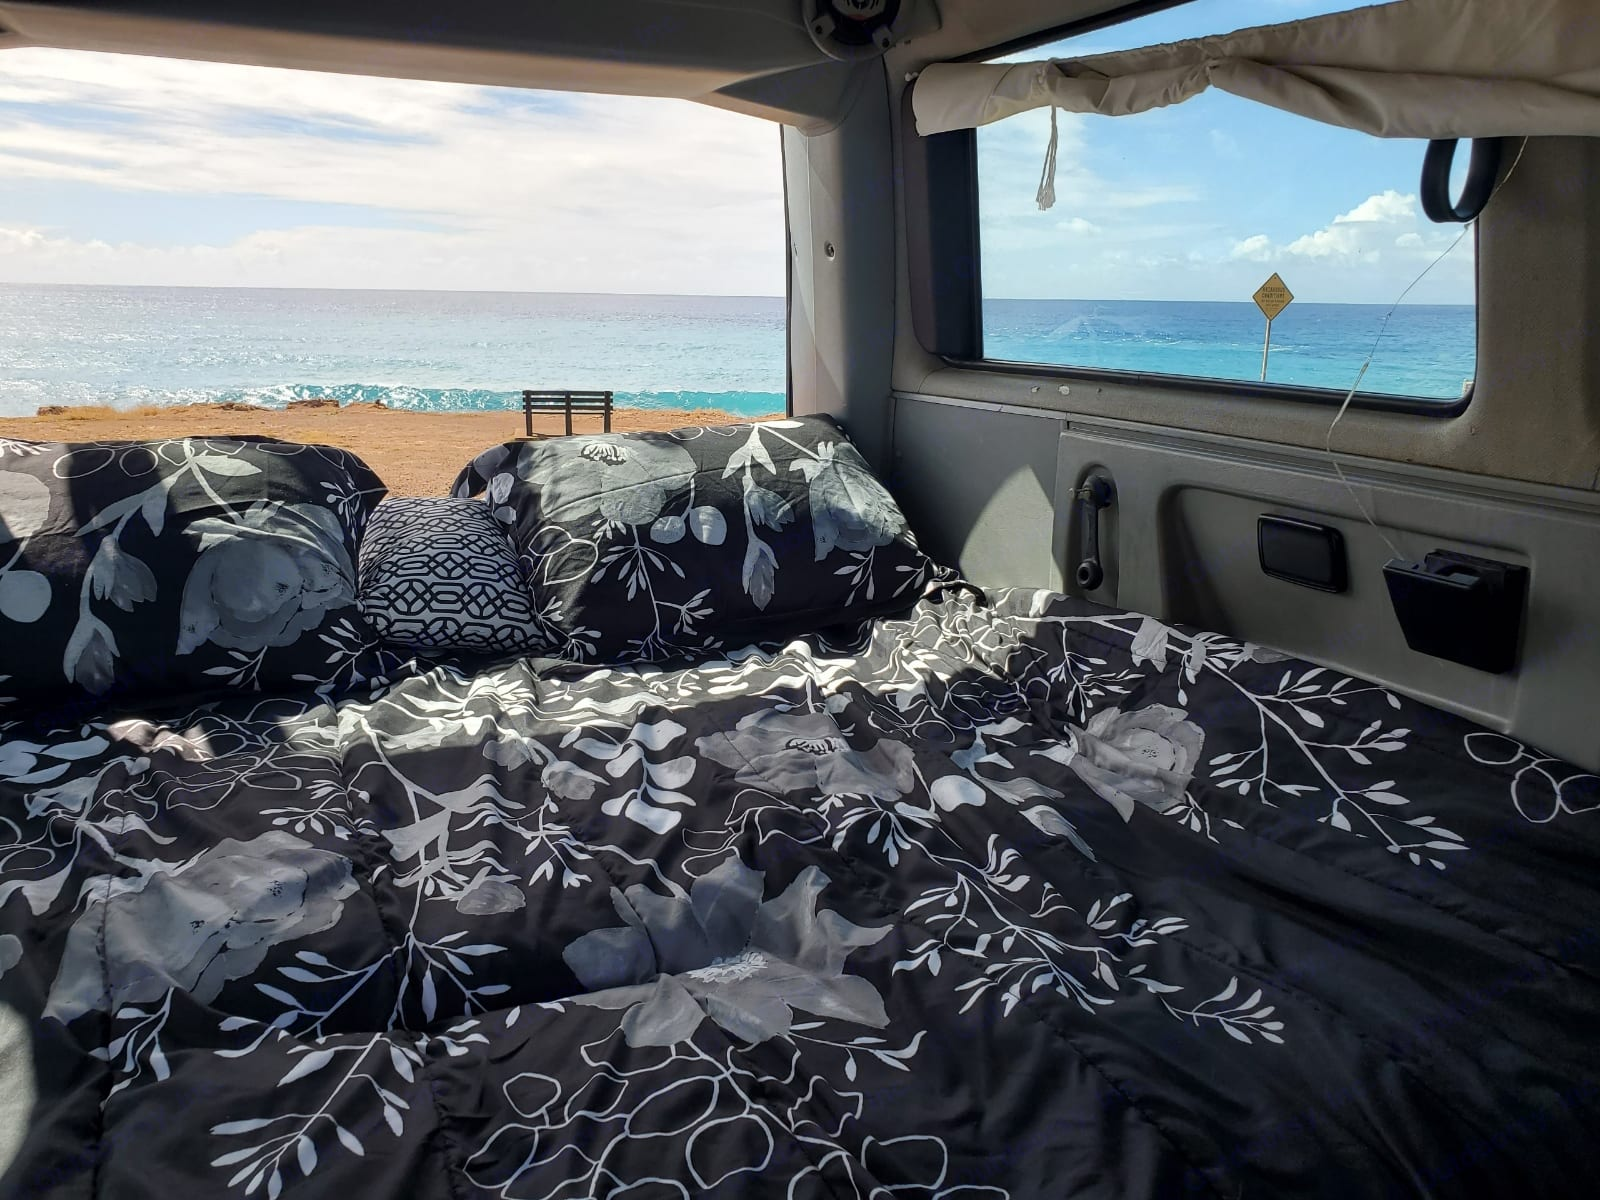 Back seat folds down into a bed.  Bedding, pillows and blankets are supplied. Windows have curtains for privacy.. Volkswagen Vanagon 1989